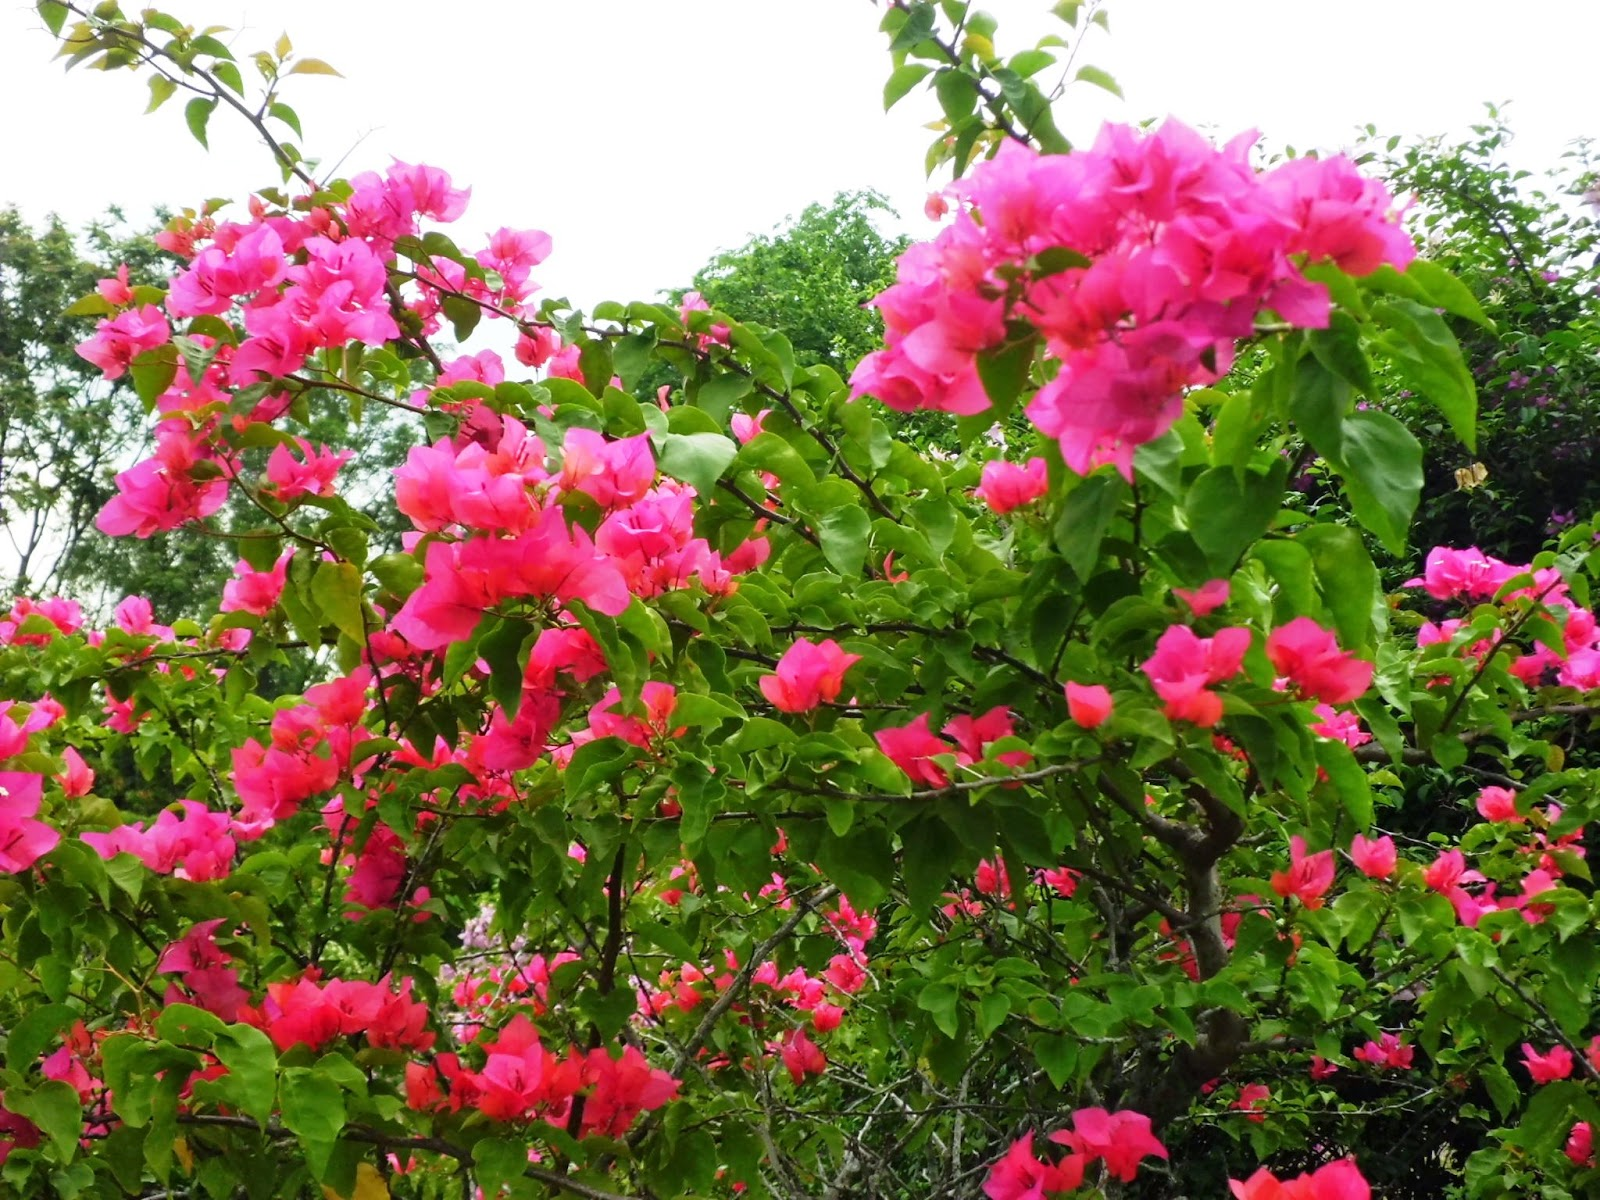 Hot pink Bougainvillea are plants easily grown but flower best with adequate sunshine, fertilizer and water.